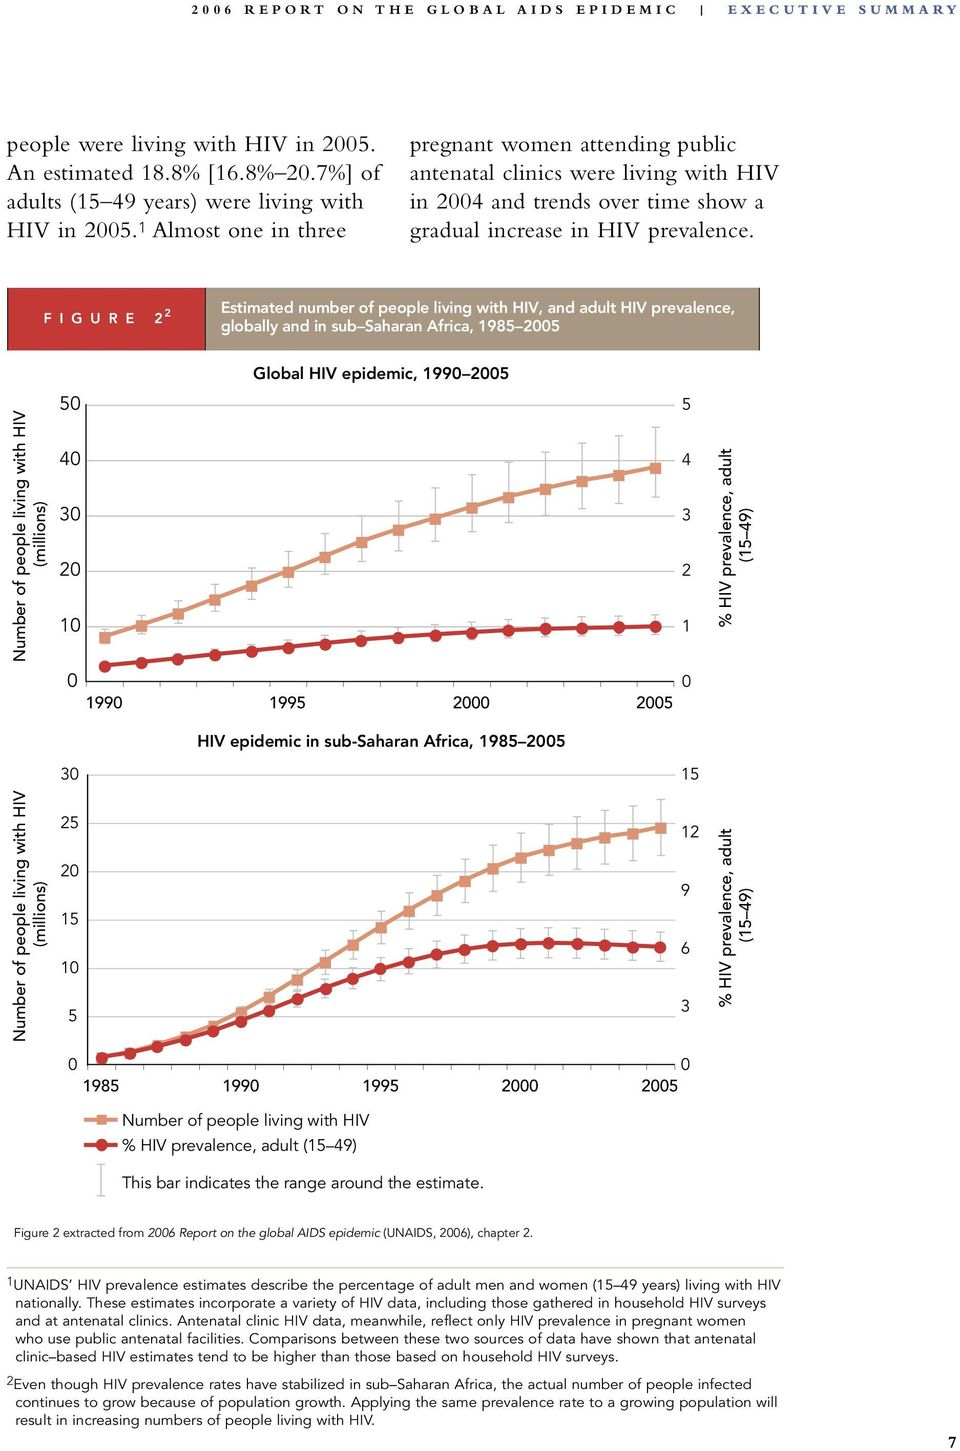 1 Almost one in three pregnant women attending public antenatal clinics were living with HIV in 2004 and trends over time show a gradual increase in HIV prevalence.